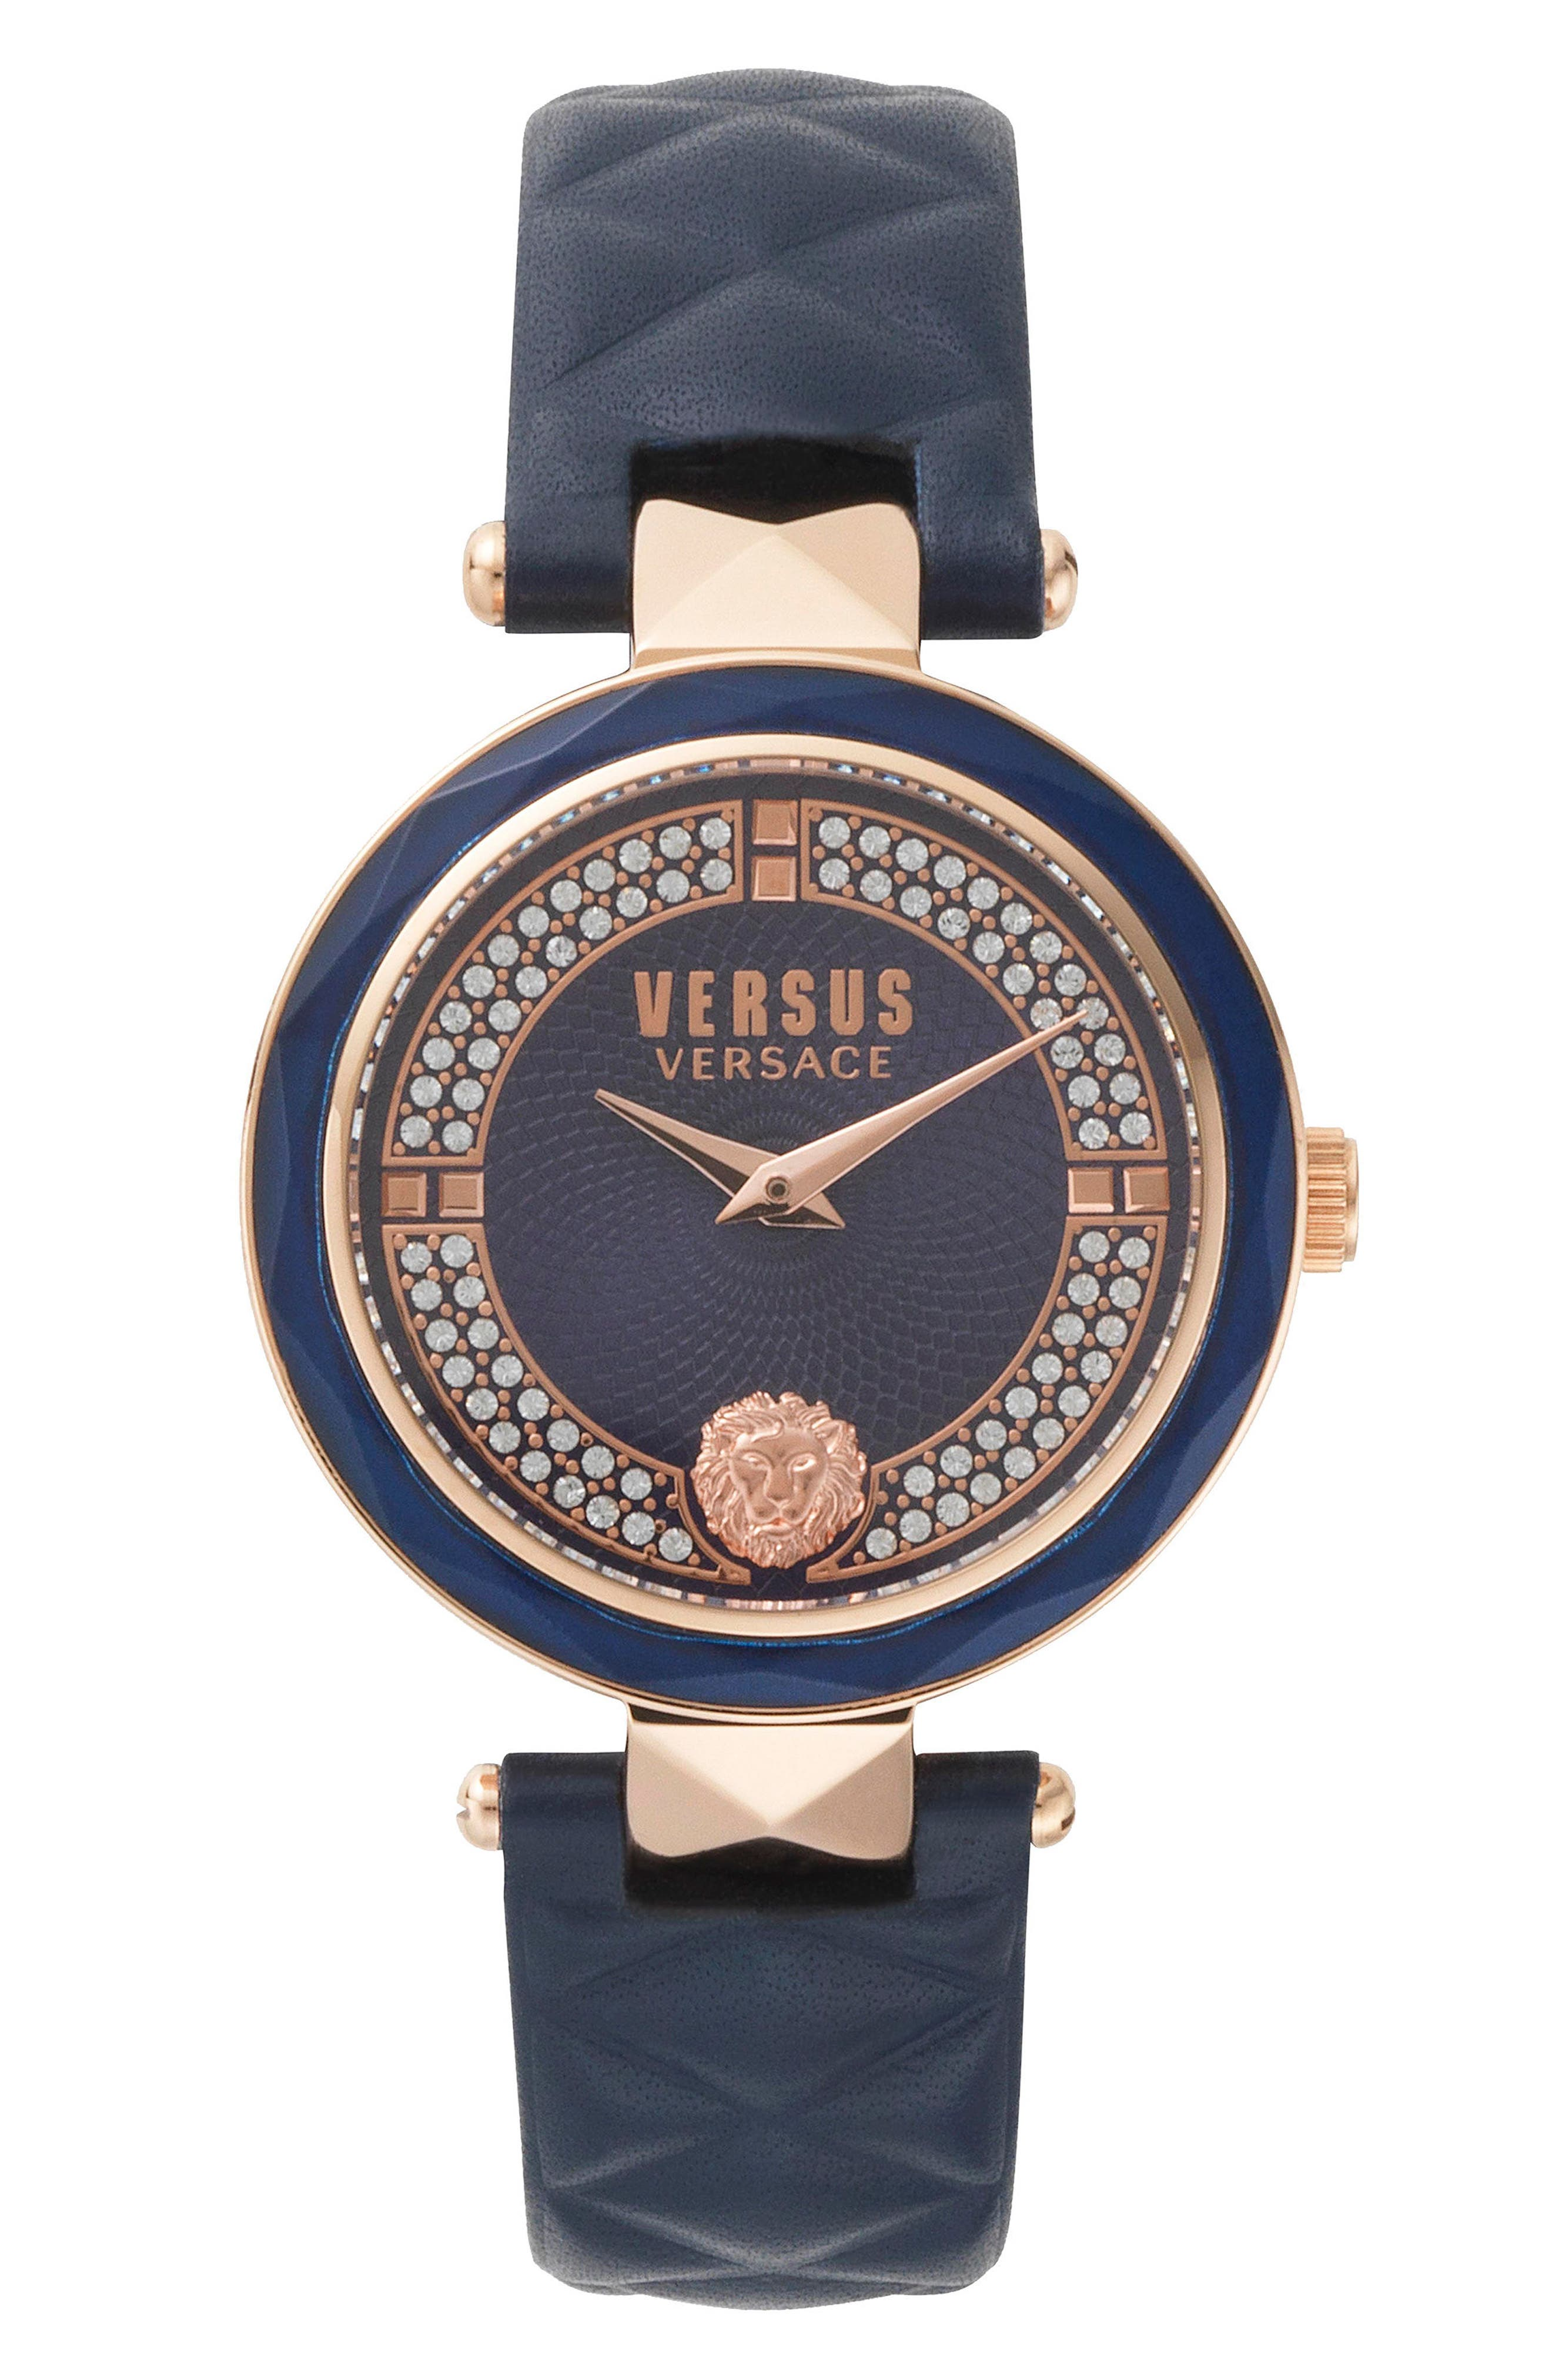 VERSUS VERSACE, Covent Garden Crystal Accent Leather Strap Watch, 36mm, Main thumbnail 1, color, BLUE/ ROSE GOLD